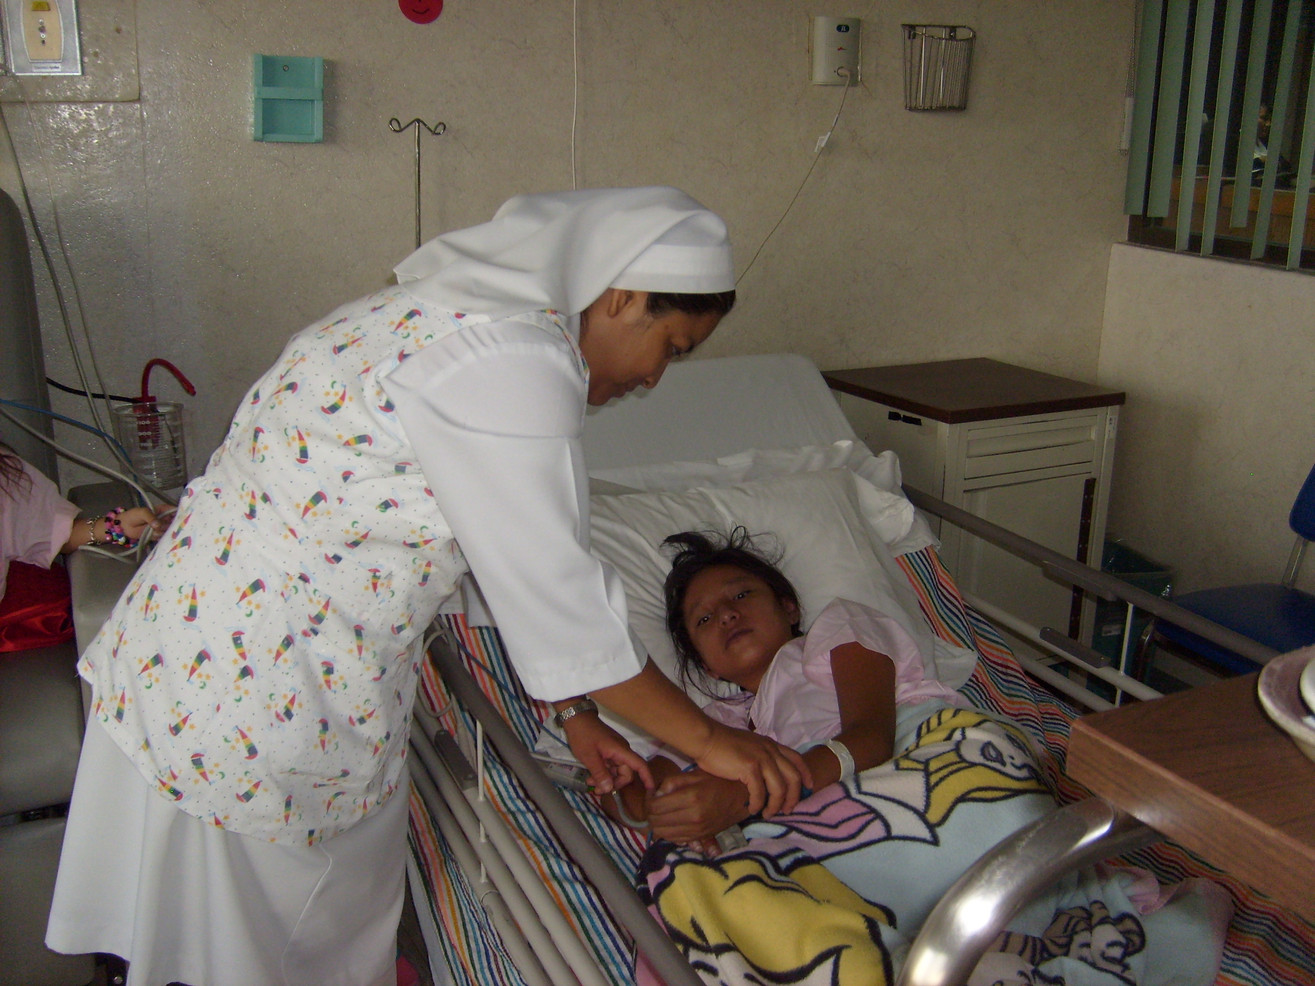 In Mexico, Sisters still work in hospitals and clinics. Here, Sr. Ángela Hernández Sánchez tends to a young patient at the Instituto Nacional de Cardiología.